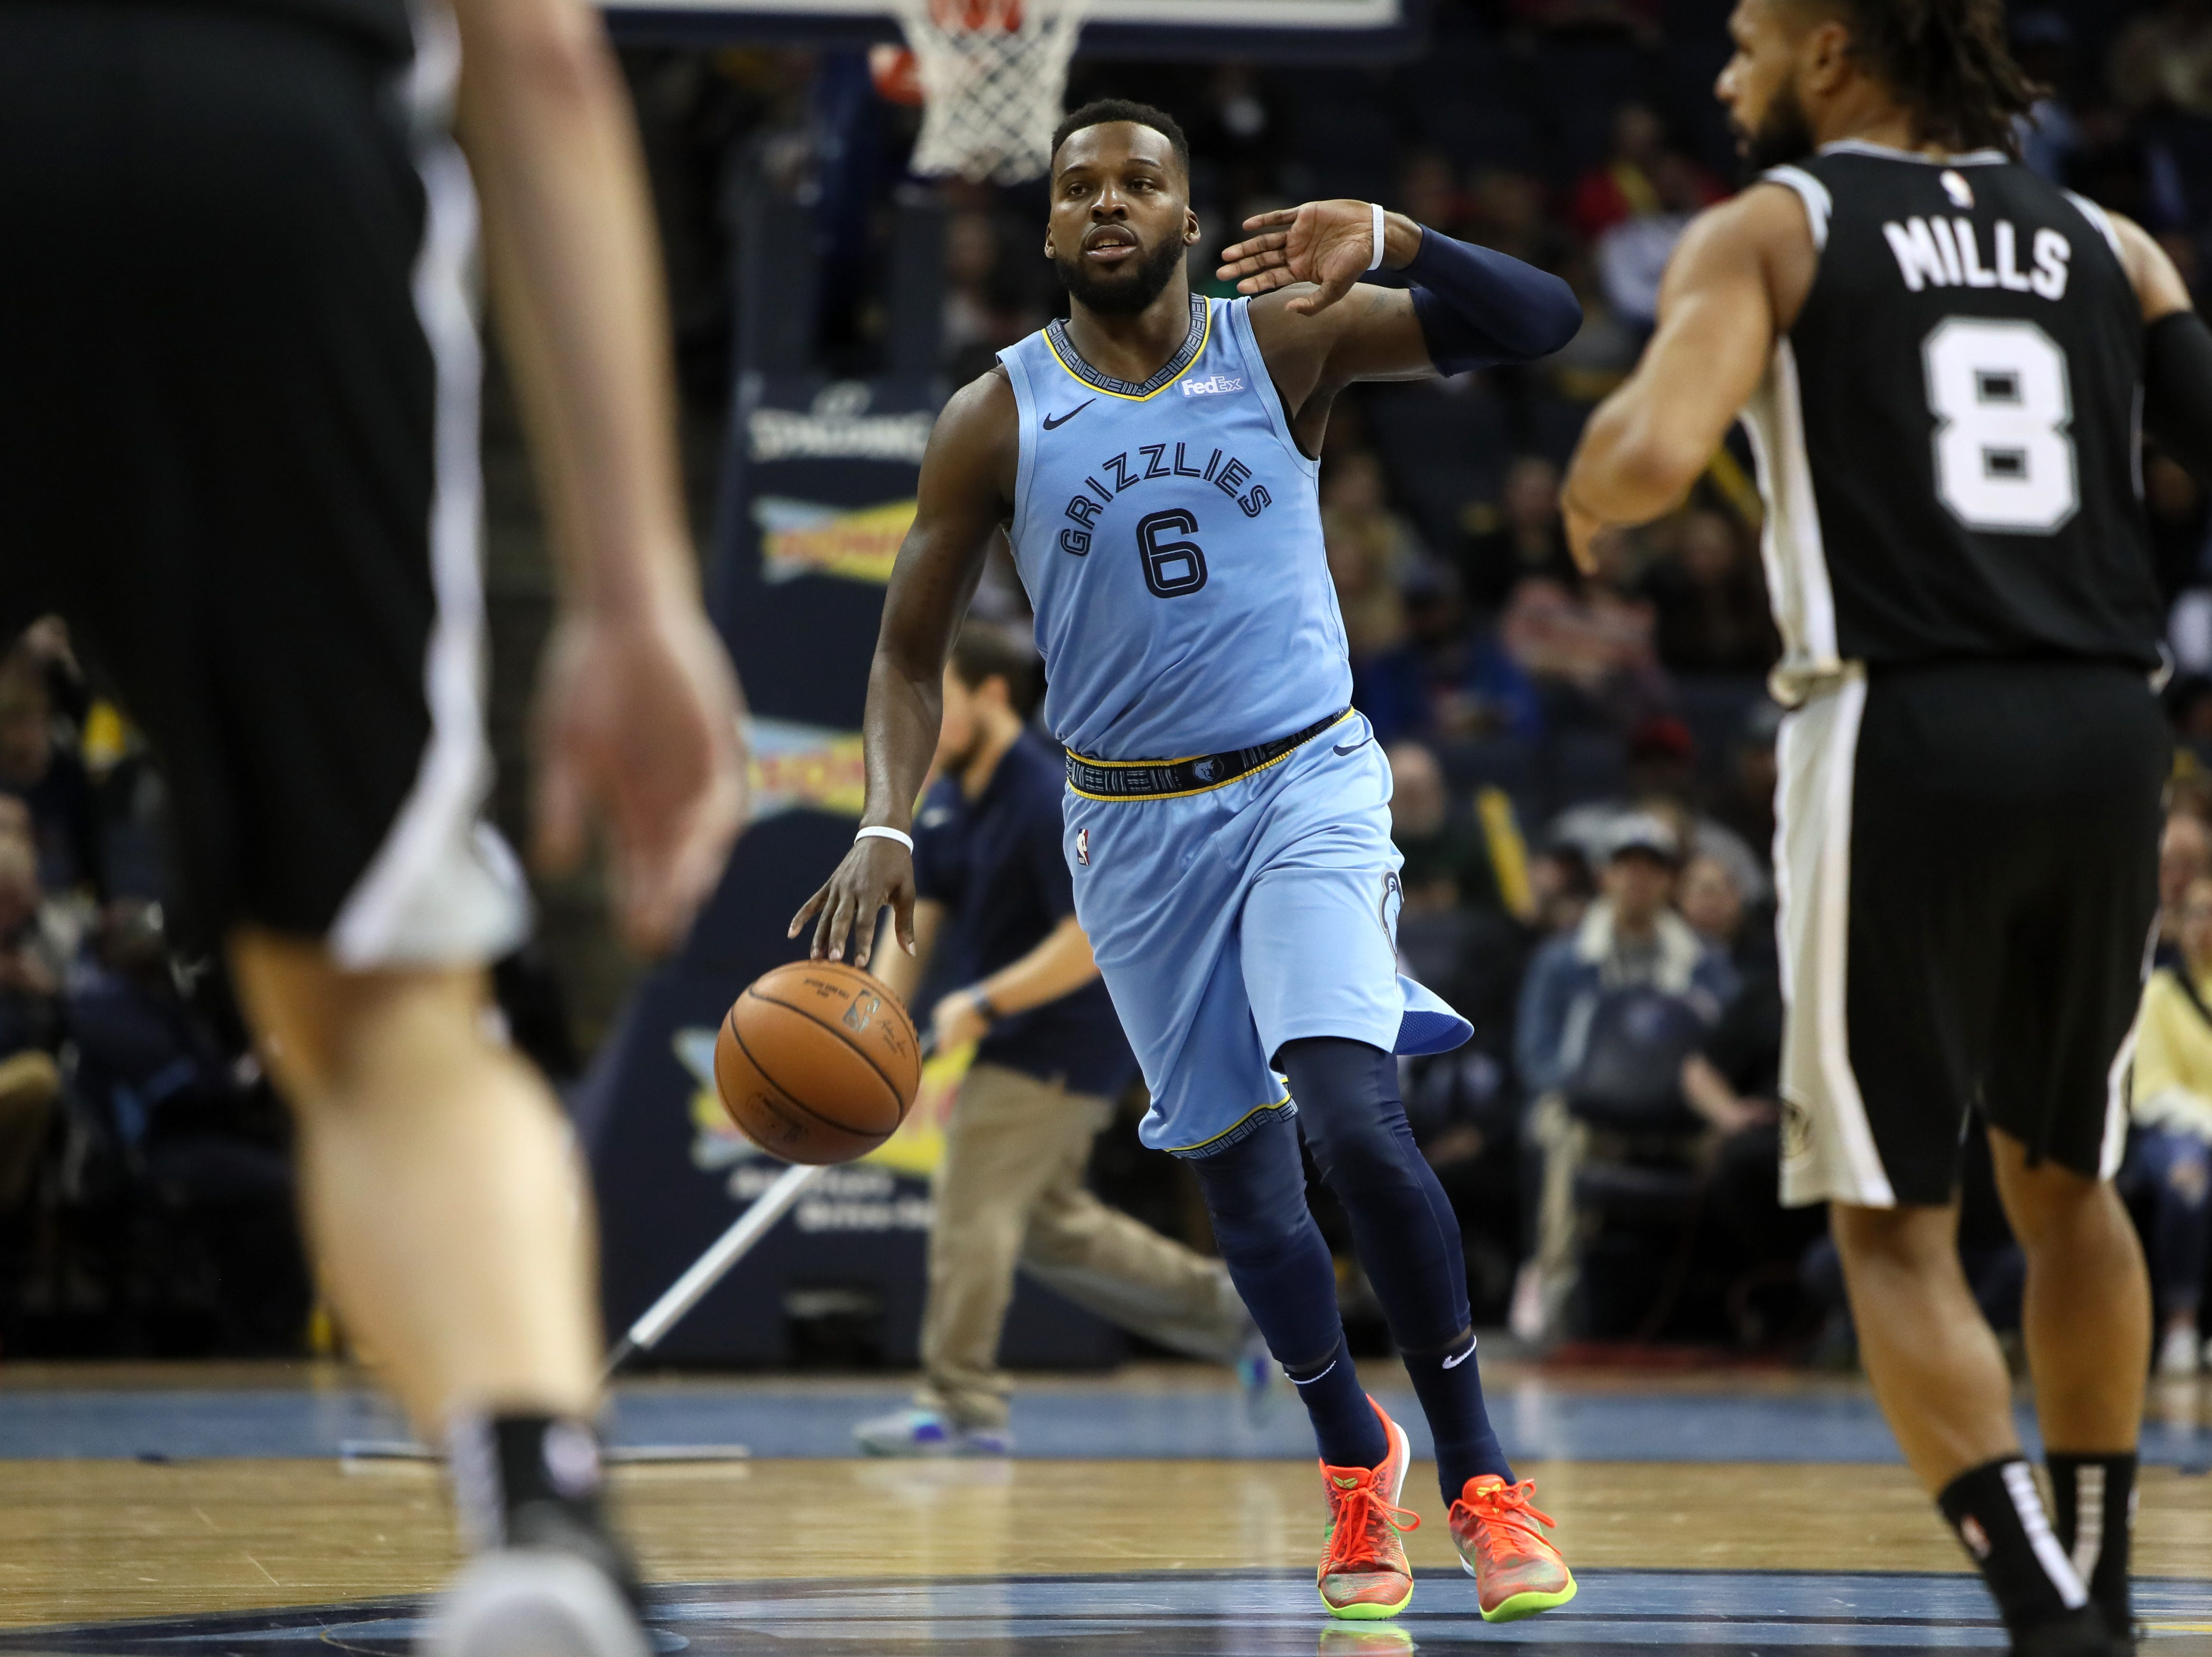 Memphis Grizzlies guard sShelvin Mack brings the ball up court against the San Antonio Spurs during their game at the FedExForum on Wednesday, Jan. 9, 2019.